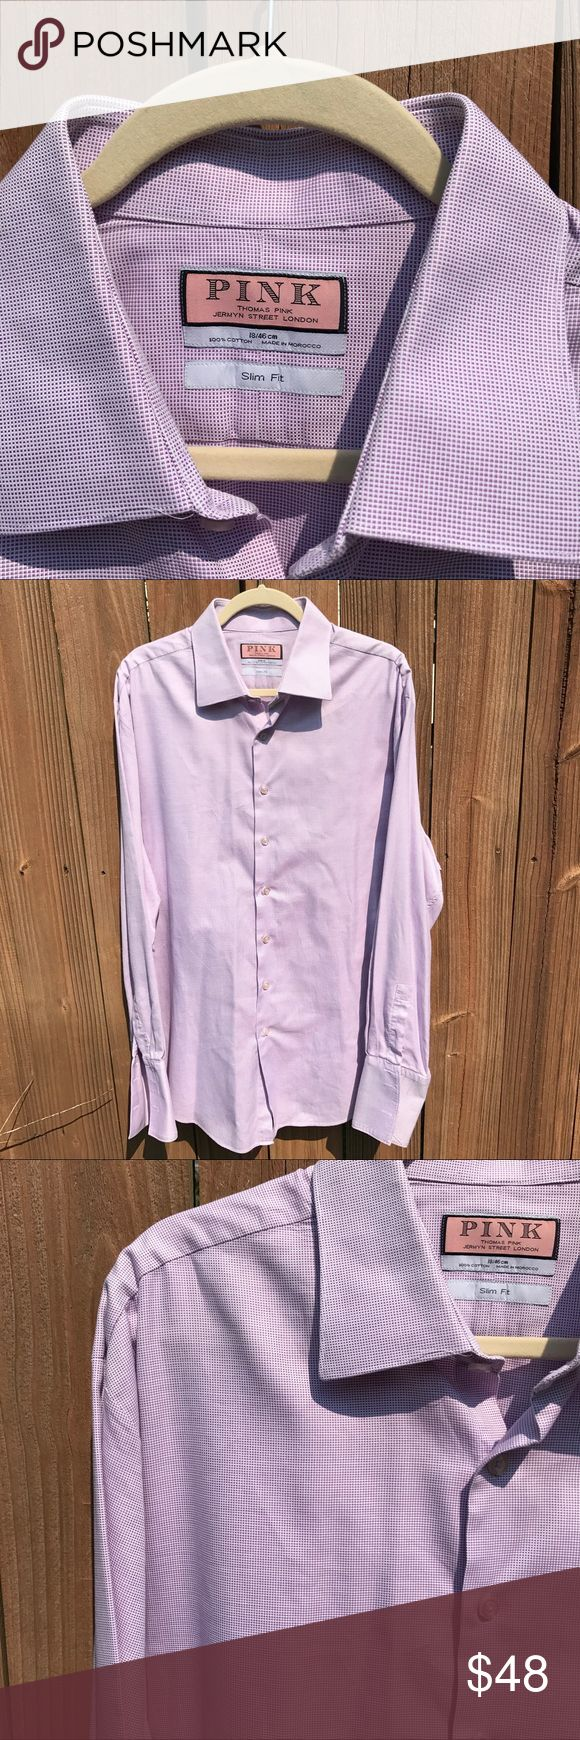 Thomas Pink men's button front shirt Pink by Thomas Pink dress shirt Slim Fit It has a purplish color check photos Very sharp shirt Very good condition 100% cotton 18/46 cm Made in Morrocco slim fit French cuffs Thomas Pink Shirts Casual Button Down Shirts